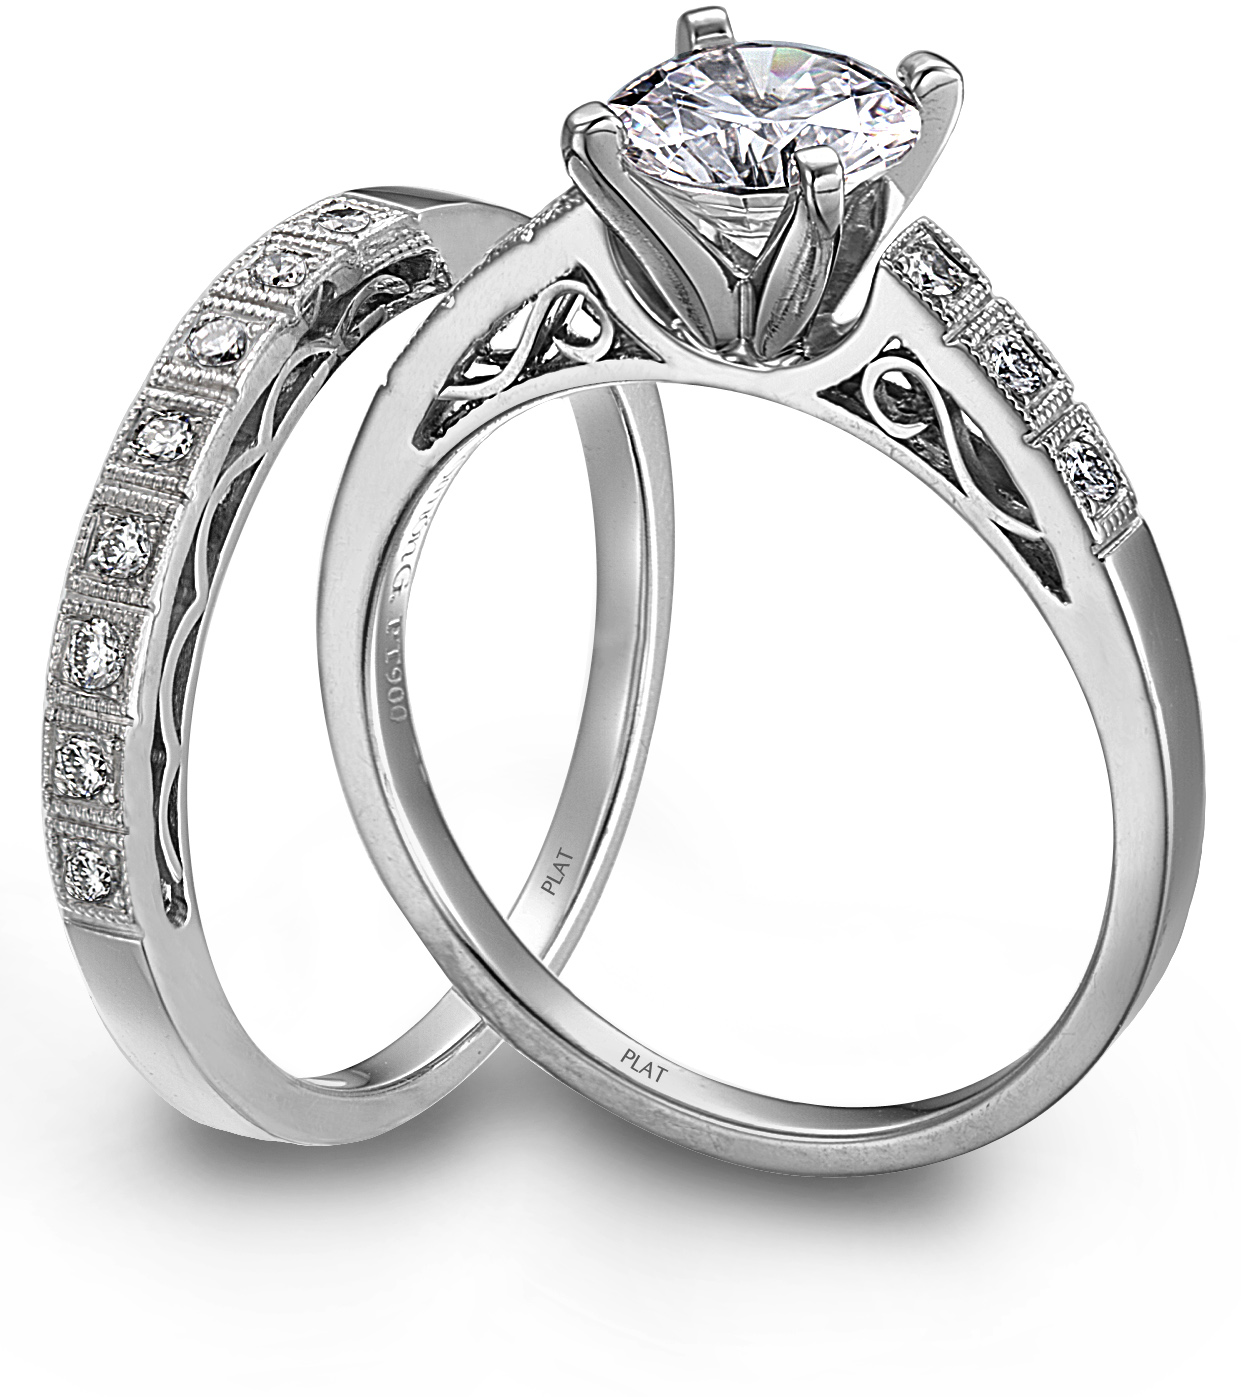 wedding engagement rings ... lrpvyhg